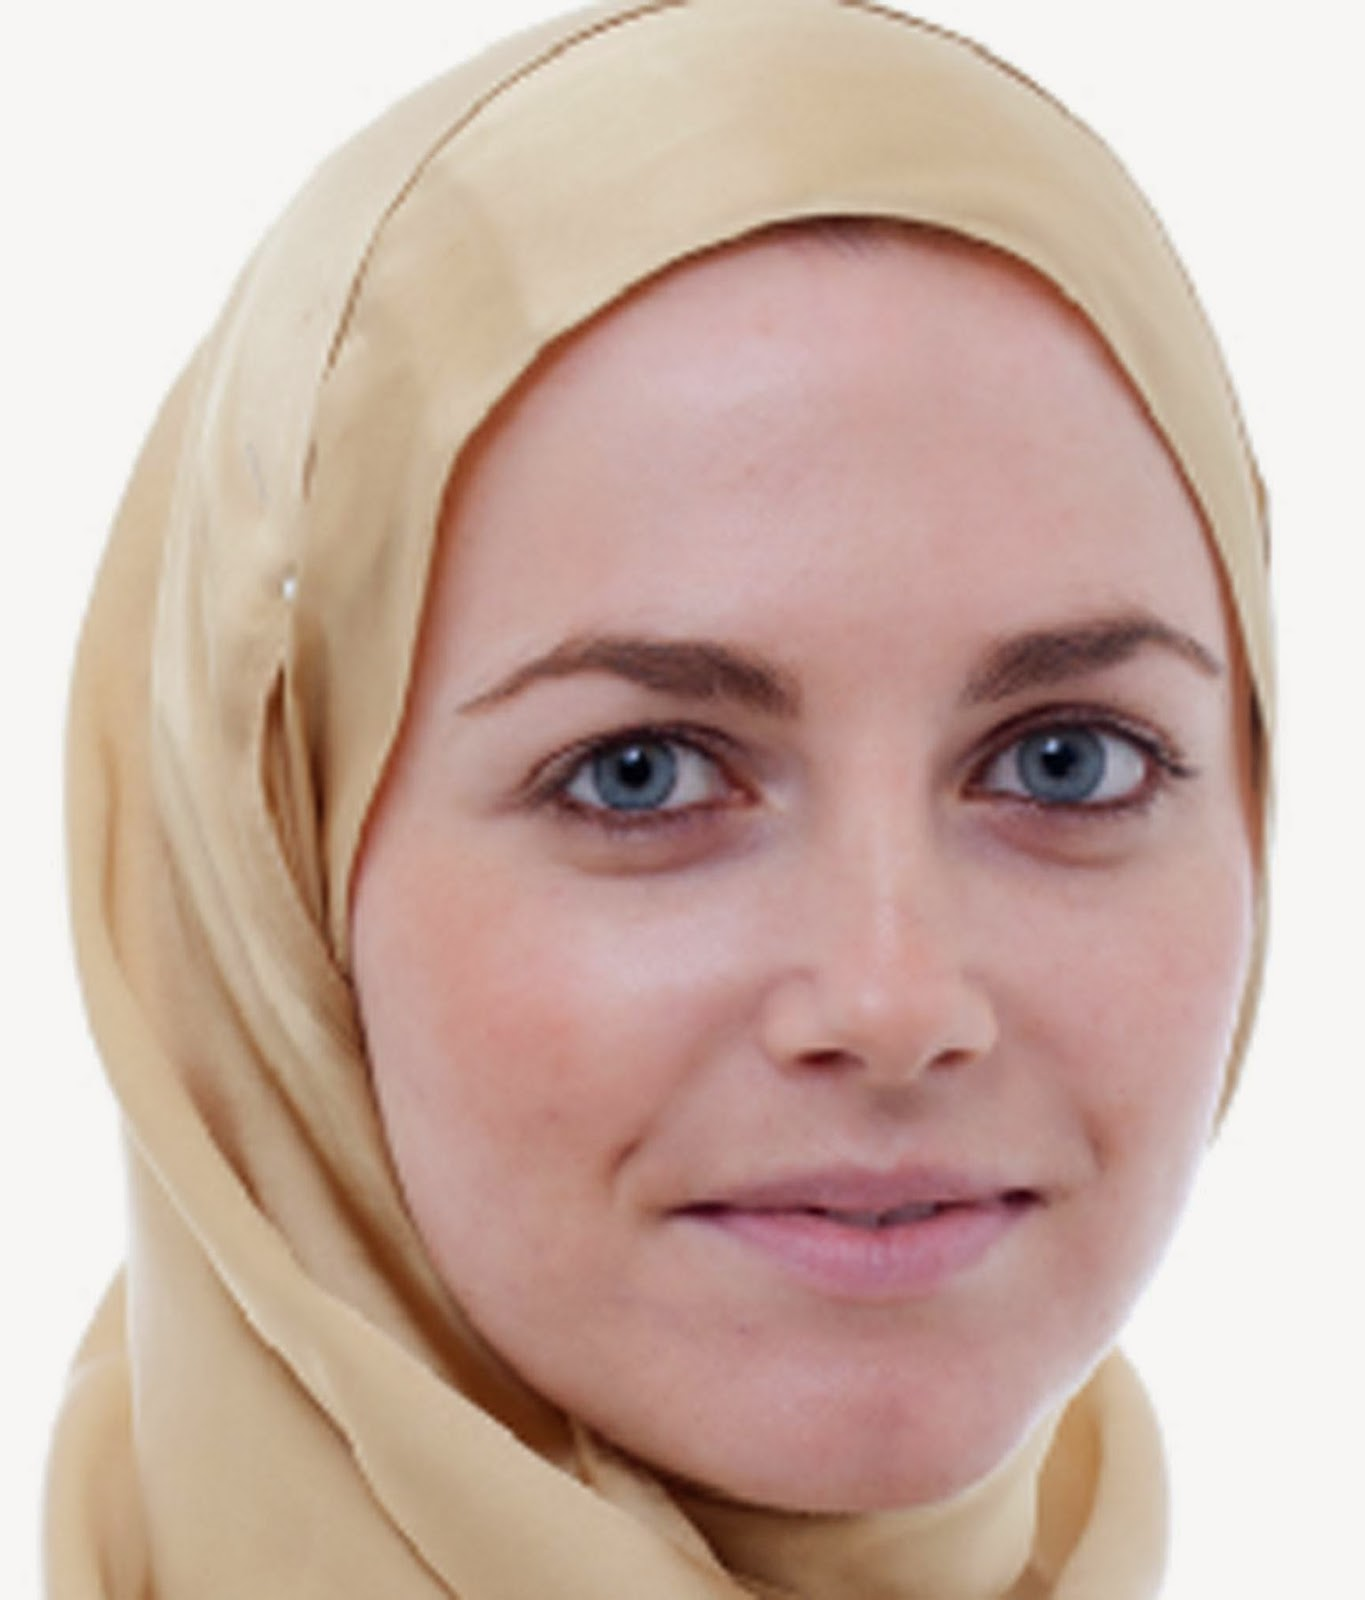 new ellenton muslim single women Single muslim women on dating: all are equal it's a fascinating new combination of values from faith and the secular society in which they grew up.